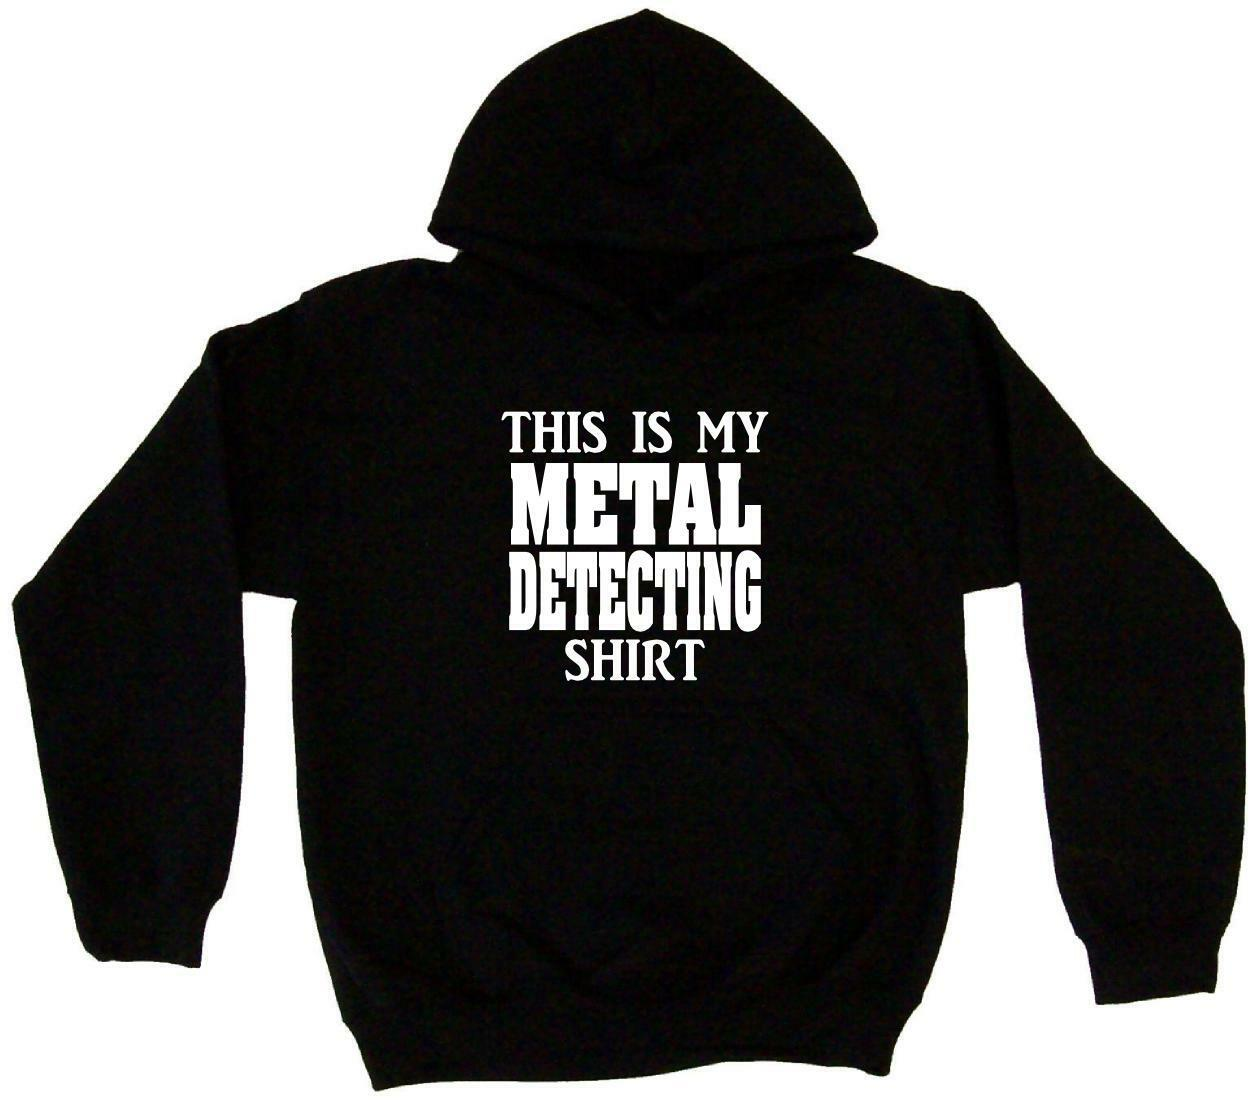 This is My Metal Detecting Shirt Men's Hoodie Sweat Shirt Pick Size Small-5XL